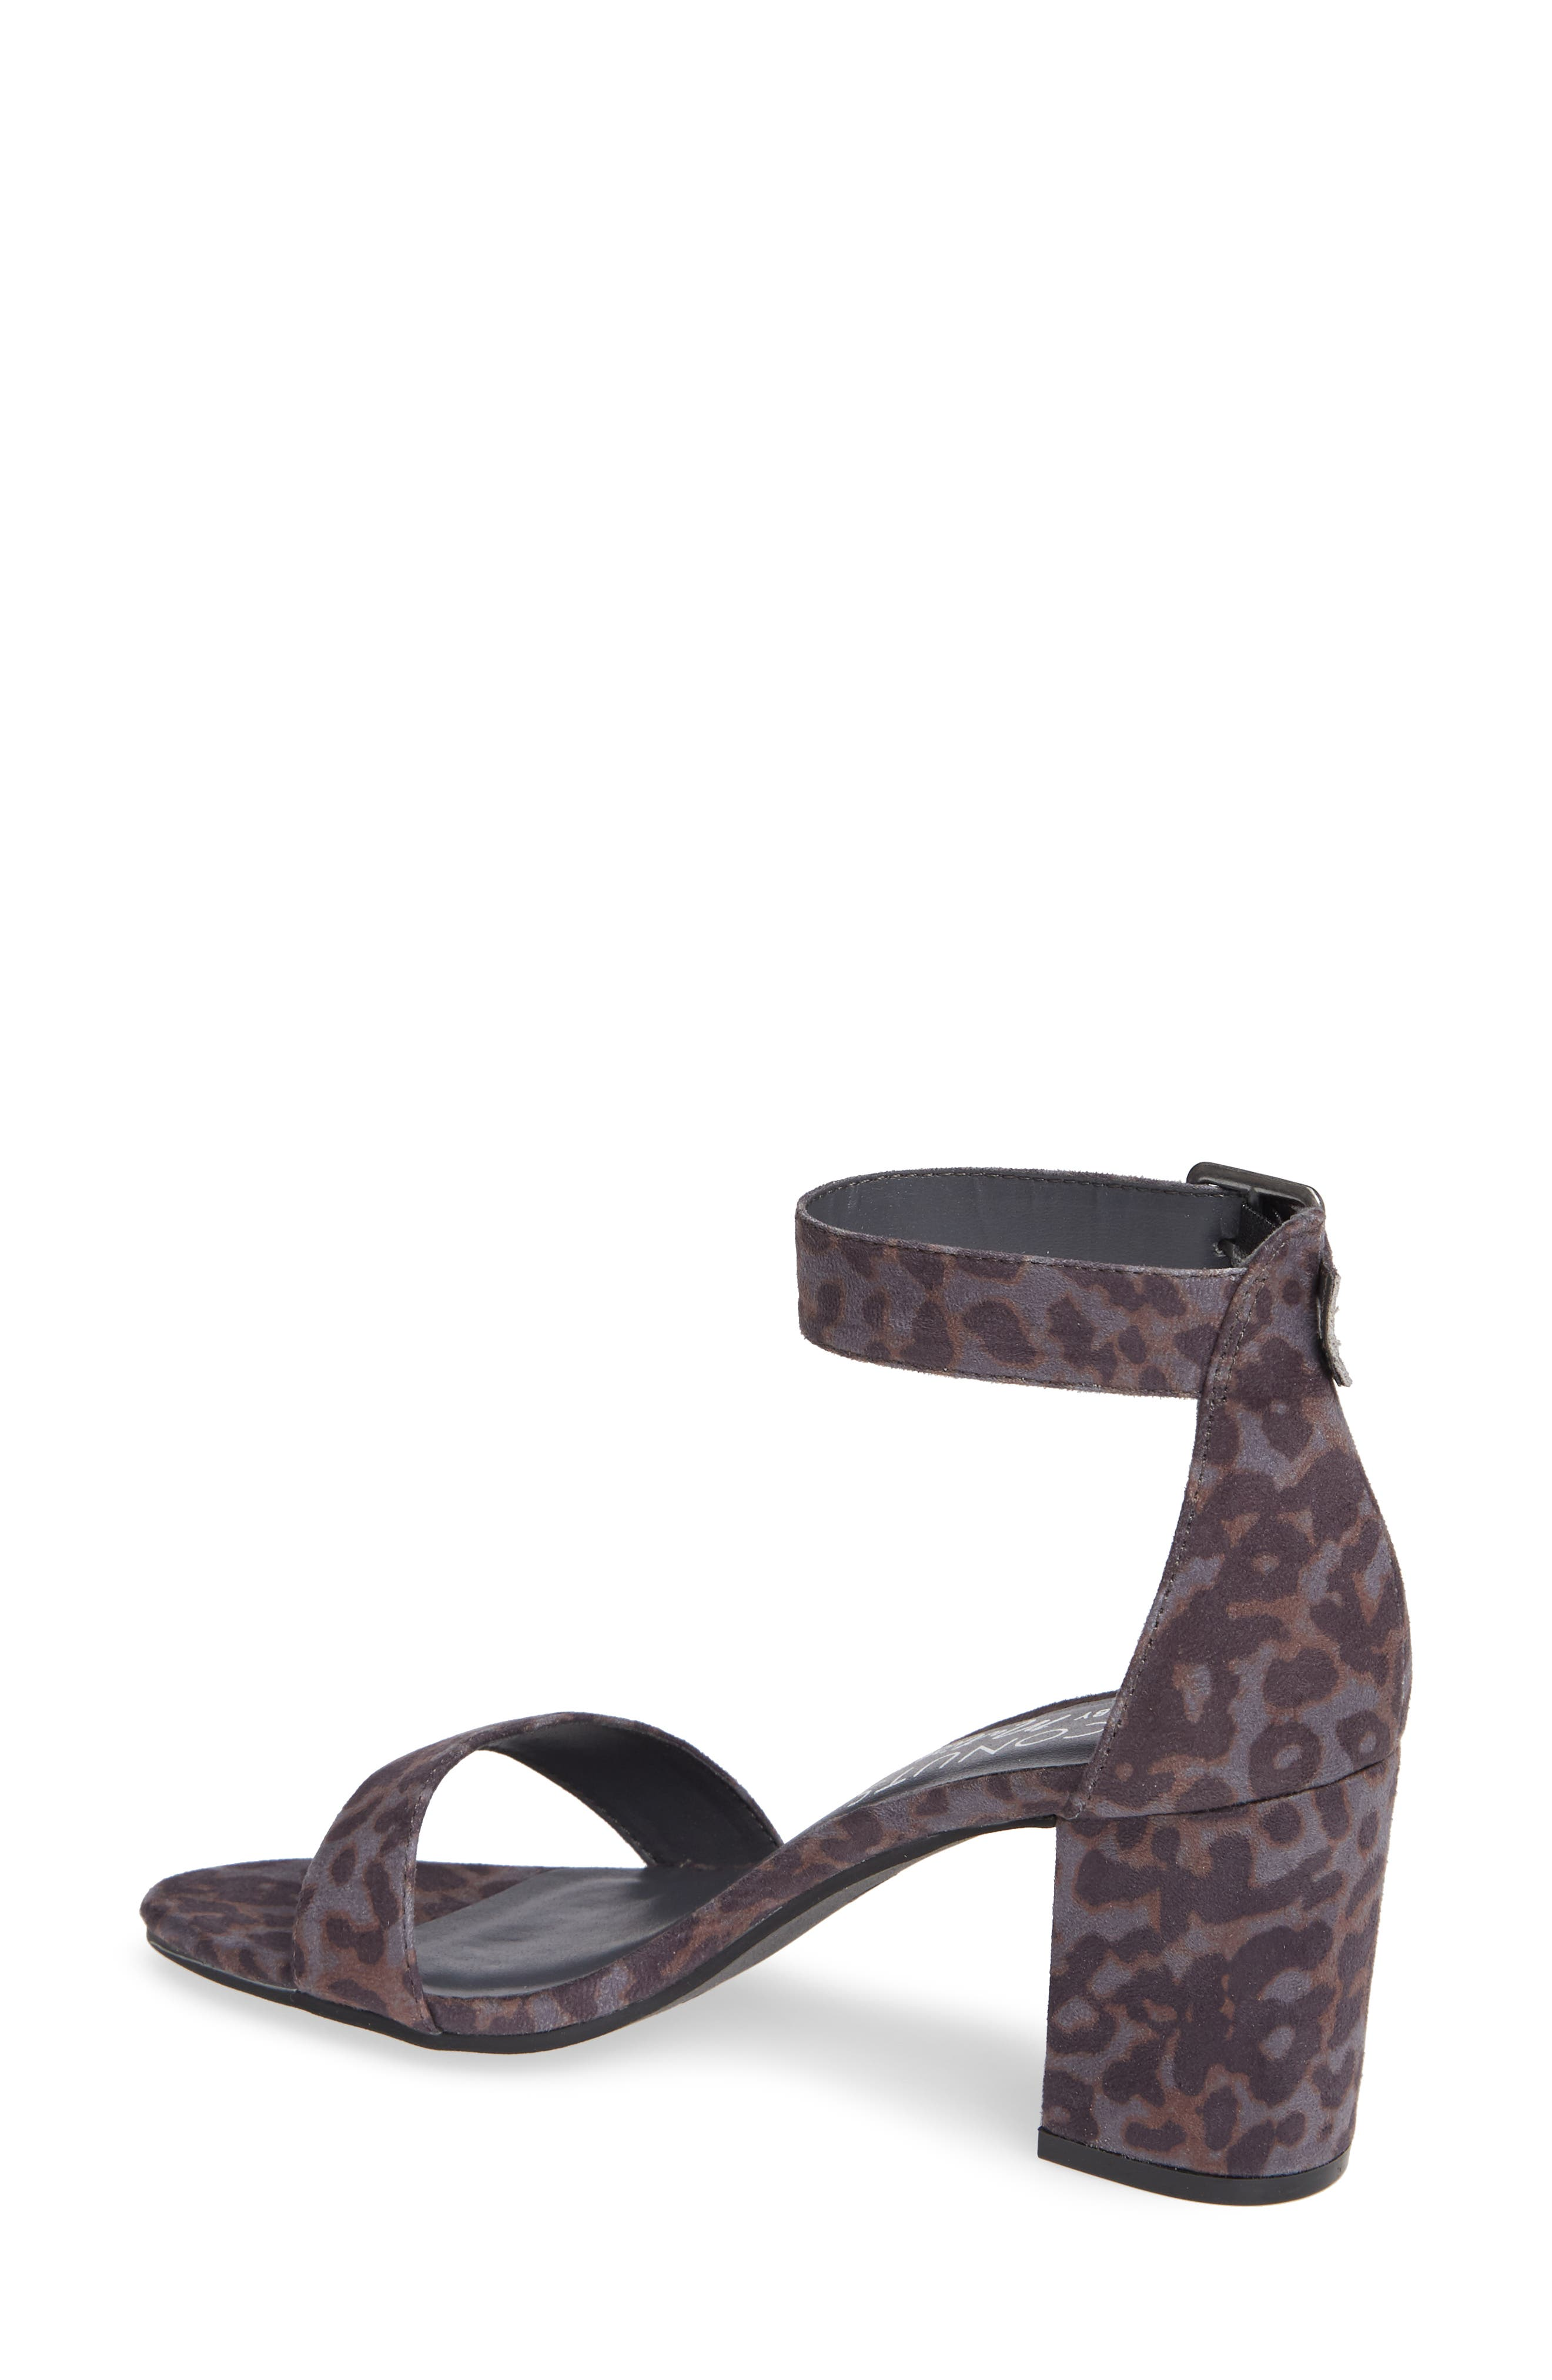 COCONUTS BY MATISSE,                             Sashed Sandal,                             Alternate thumbnail 2, color,                             028